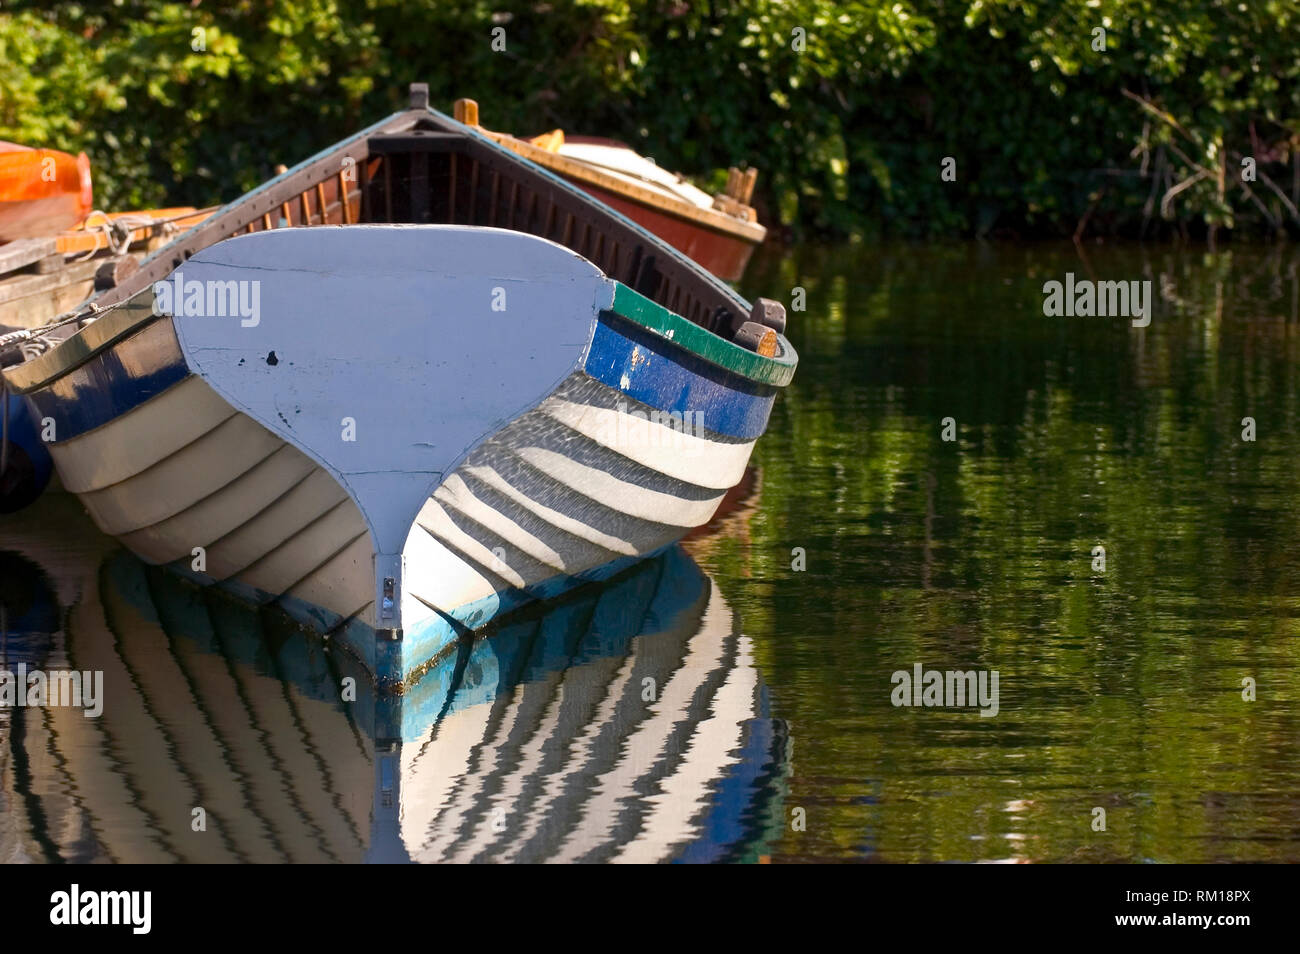 Rowboat in Water - Stock Image